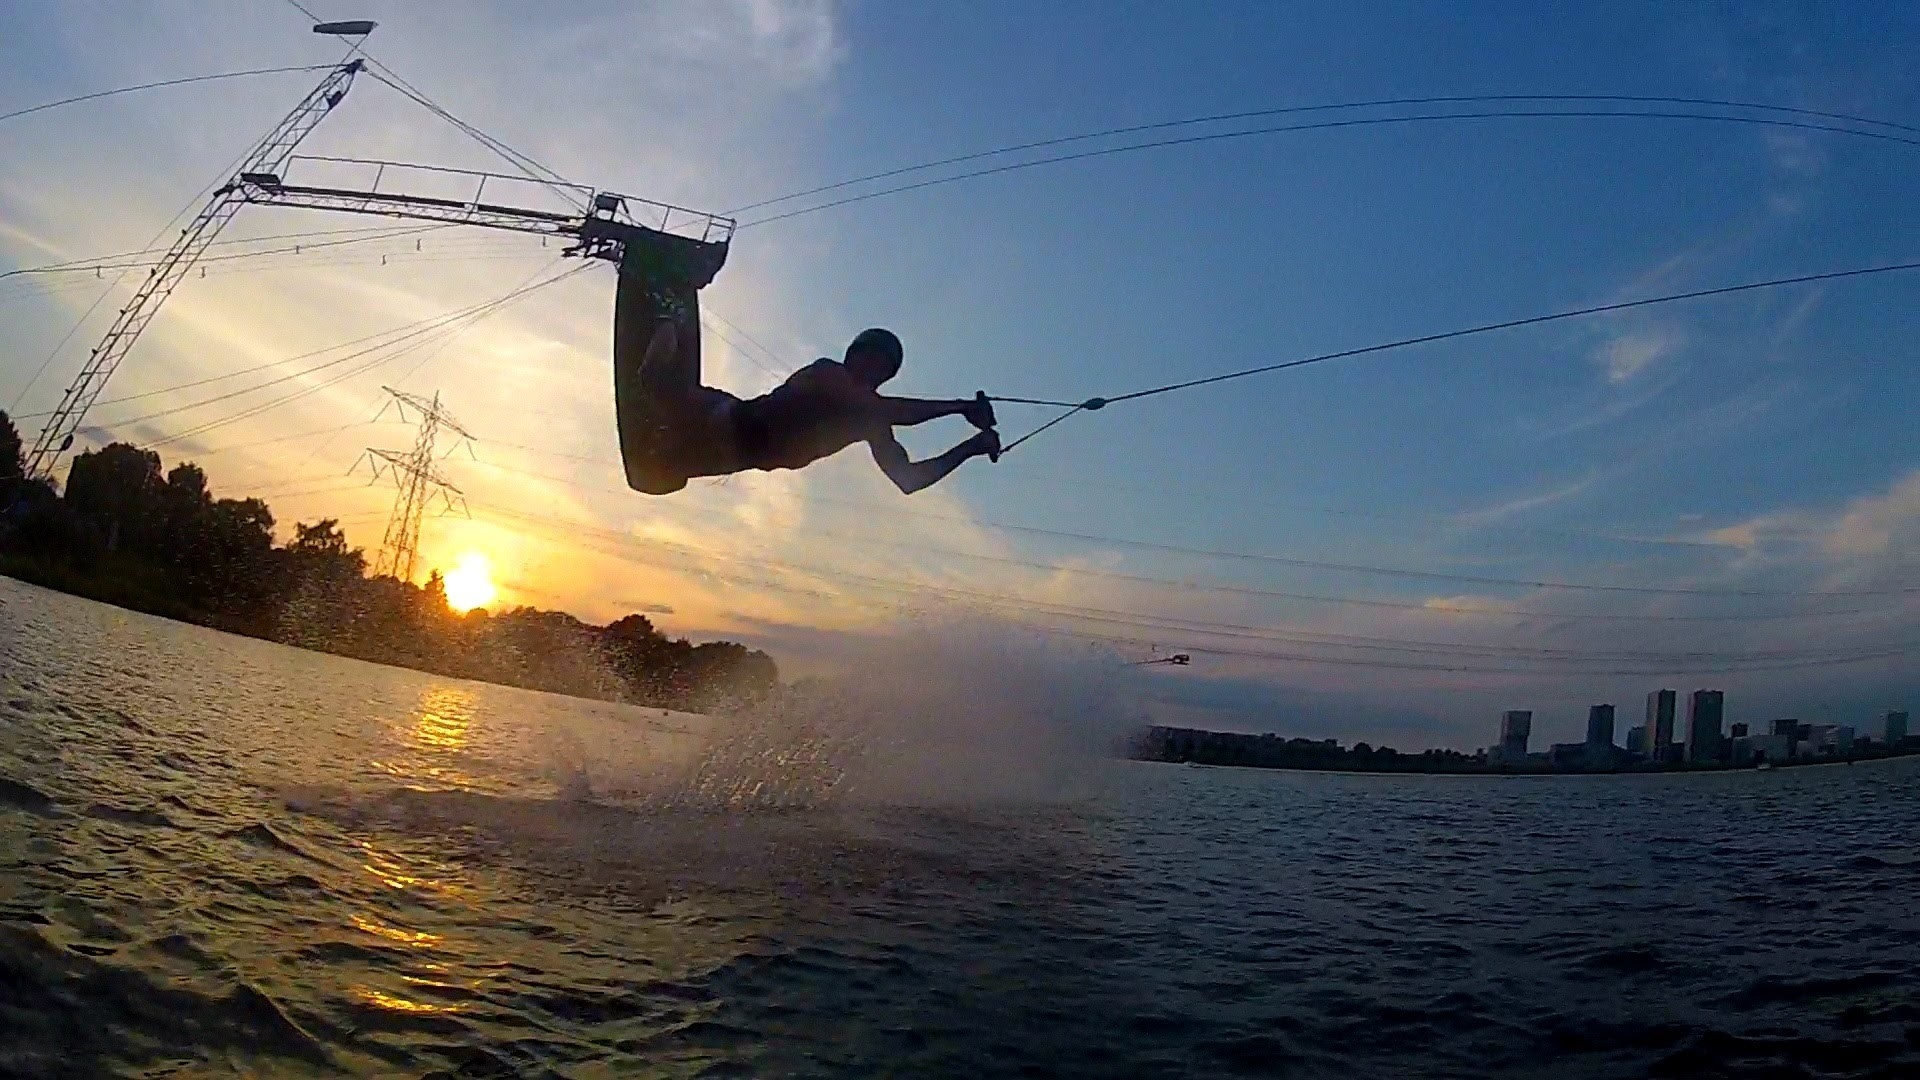 A Day At The Cable Park